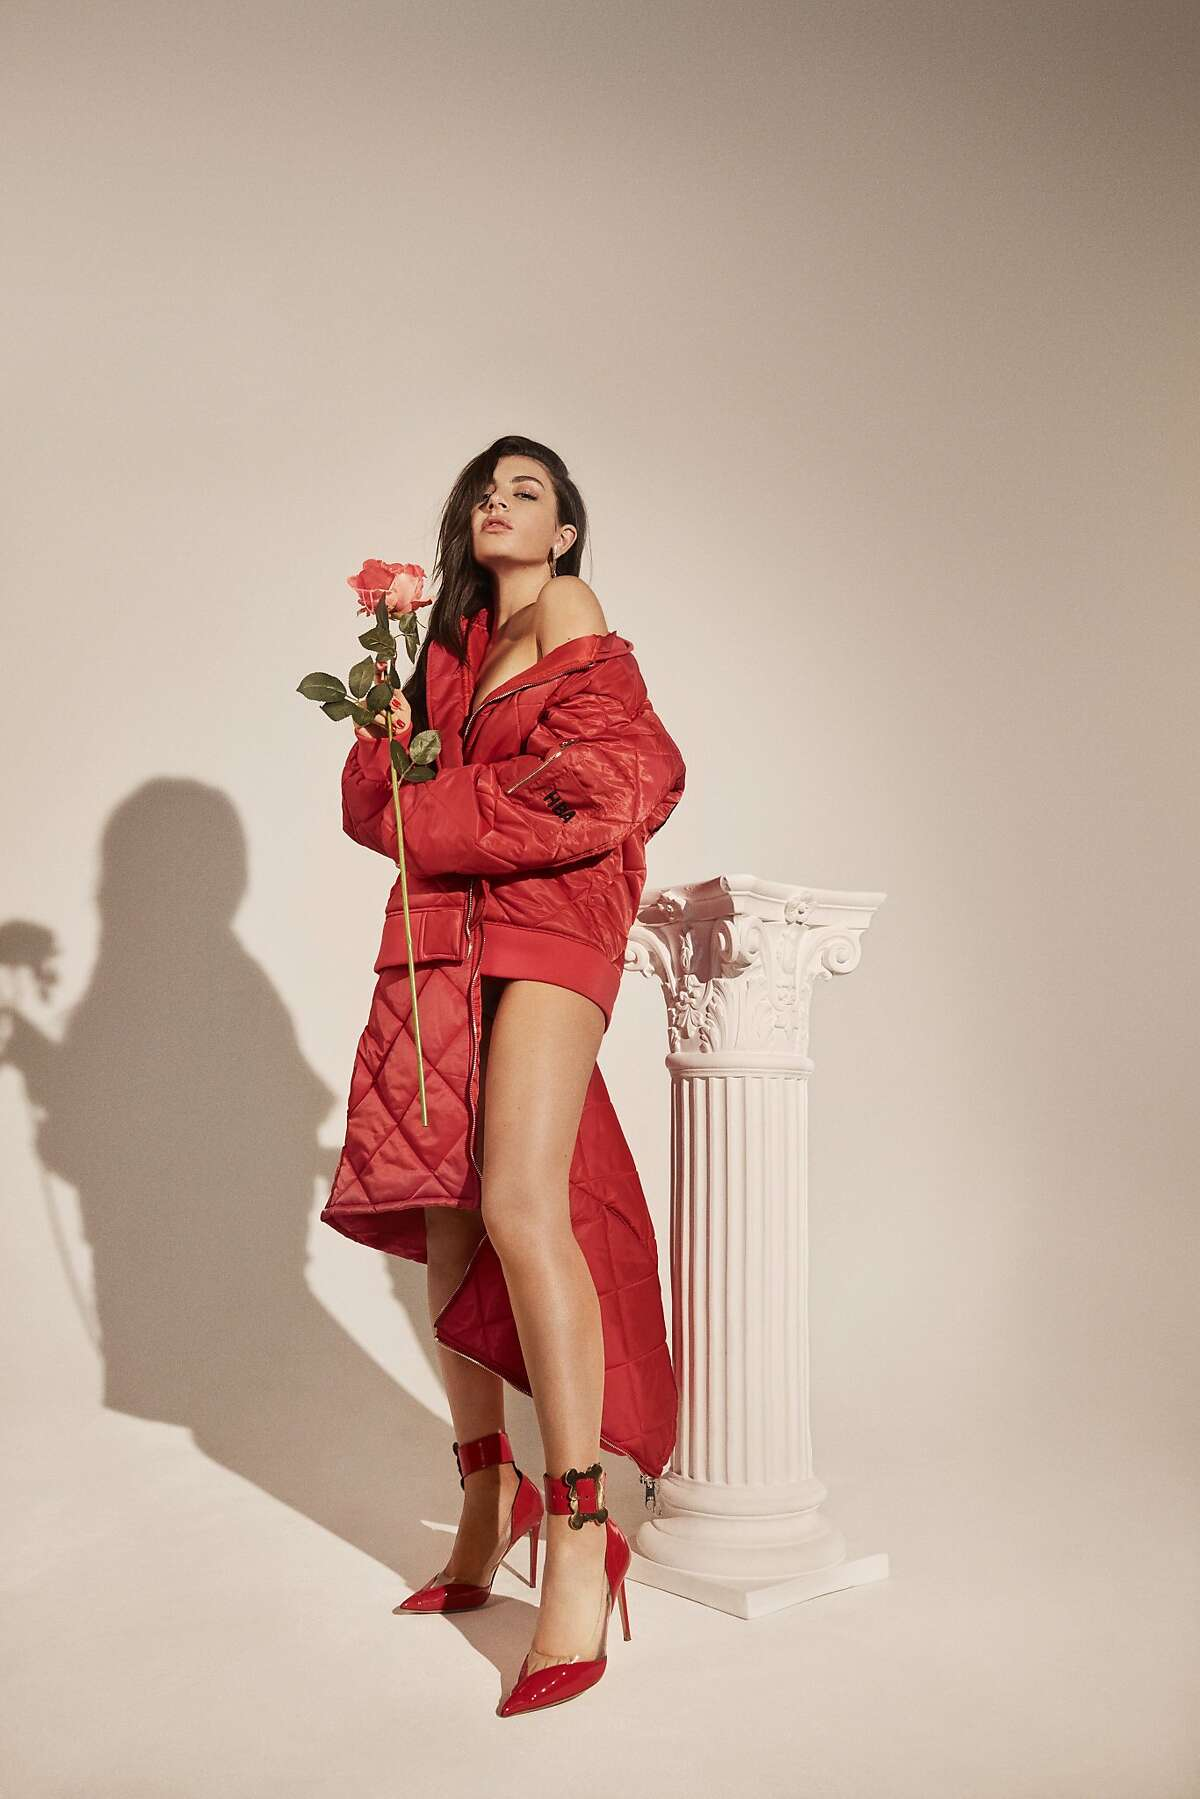 """Charli XCX's latest mixtape, """"Number 1 Angel,"""" dropped March 10, 2017. She kicks off a supporting tour at San Francisco's Rickshaw Stop on April 2, 2017."""